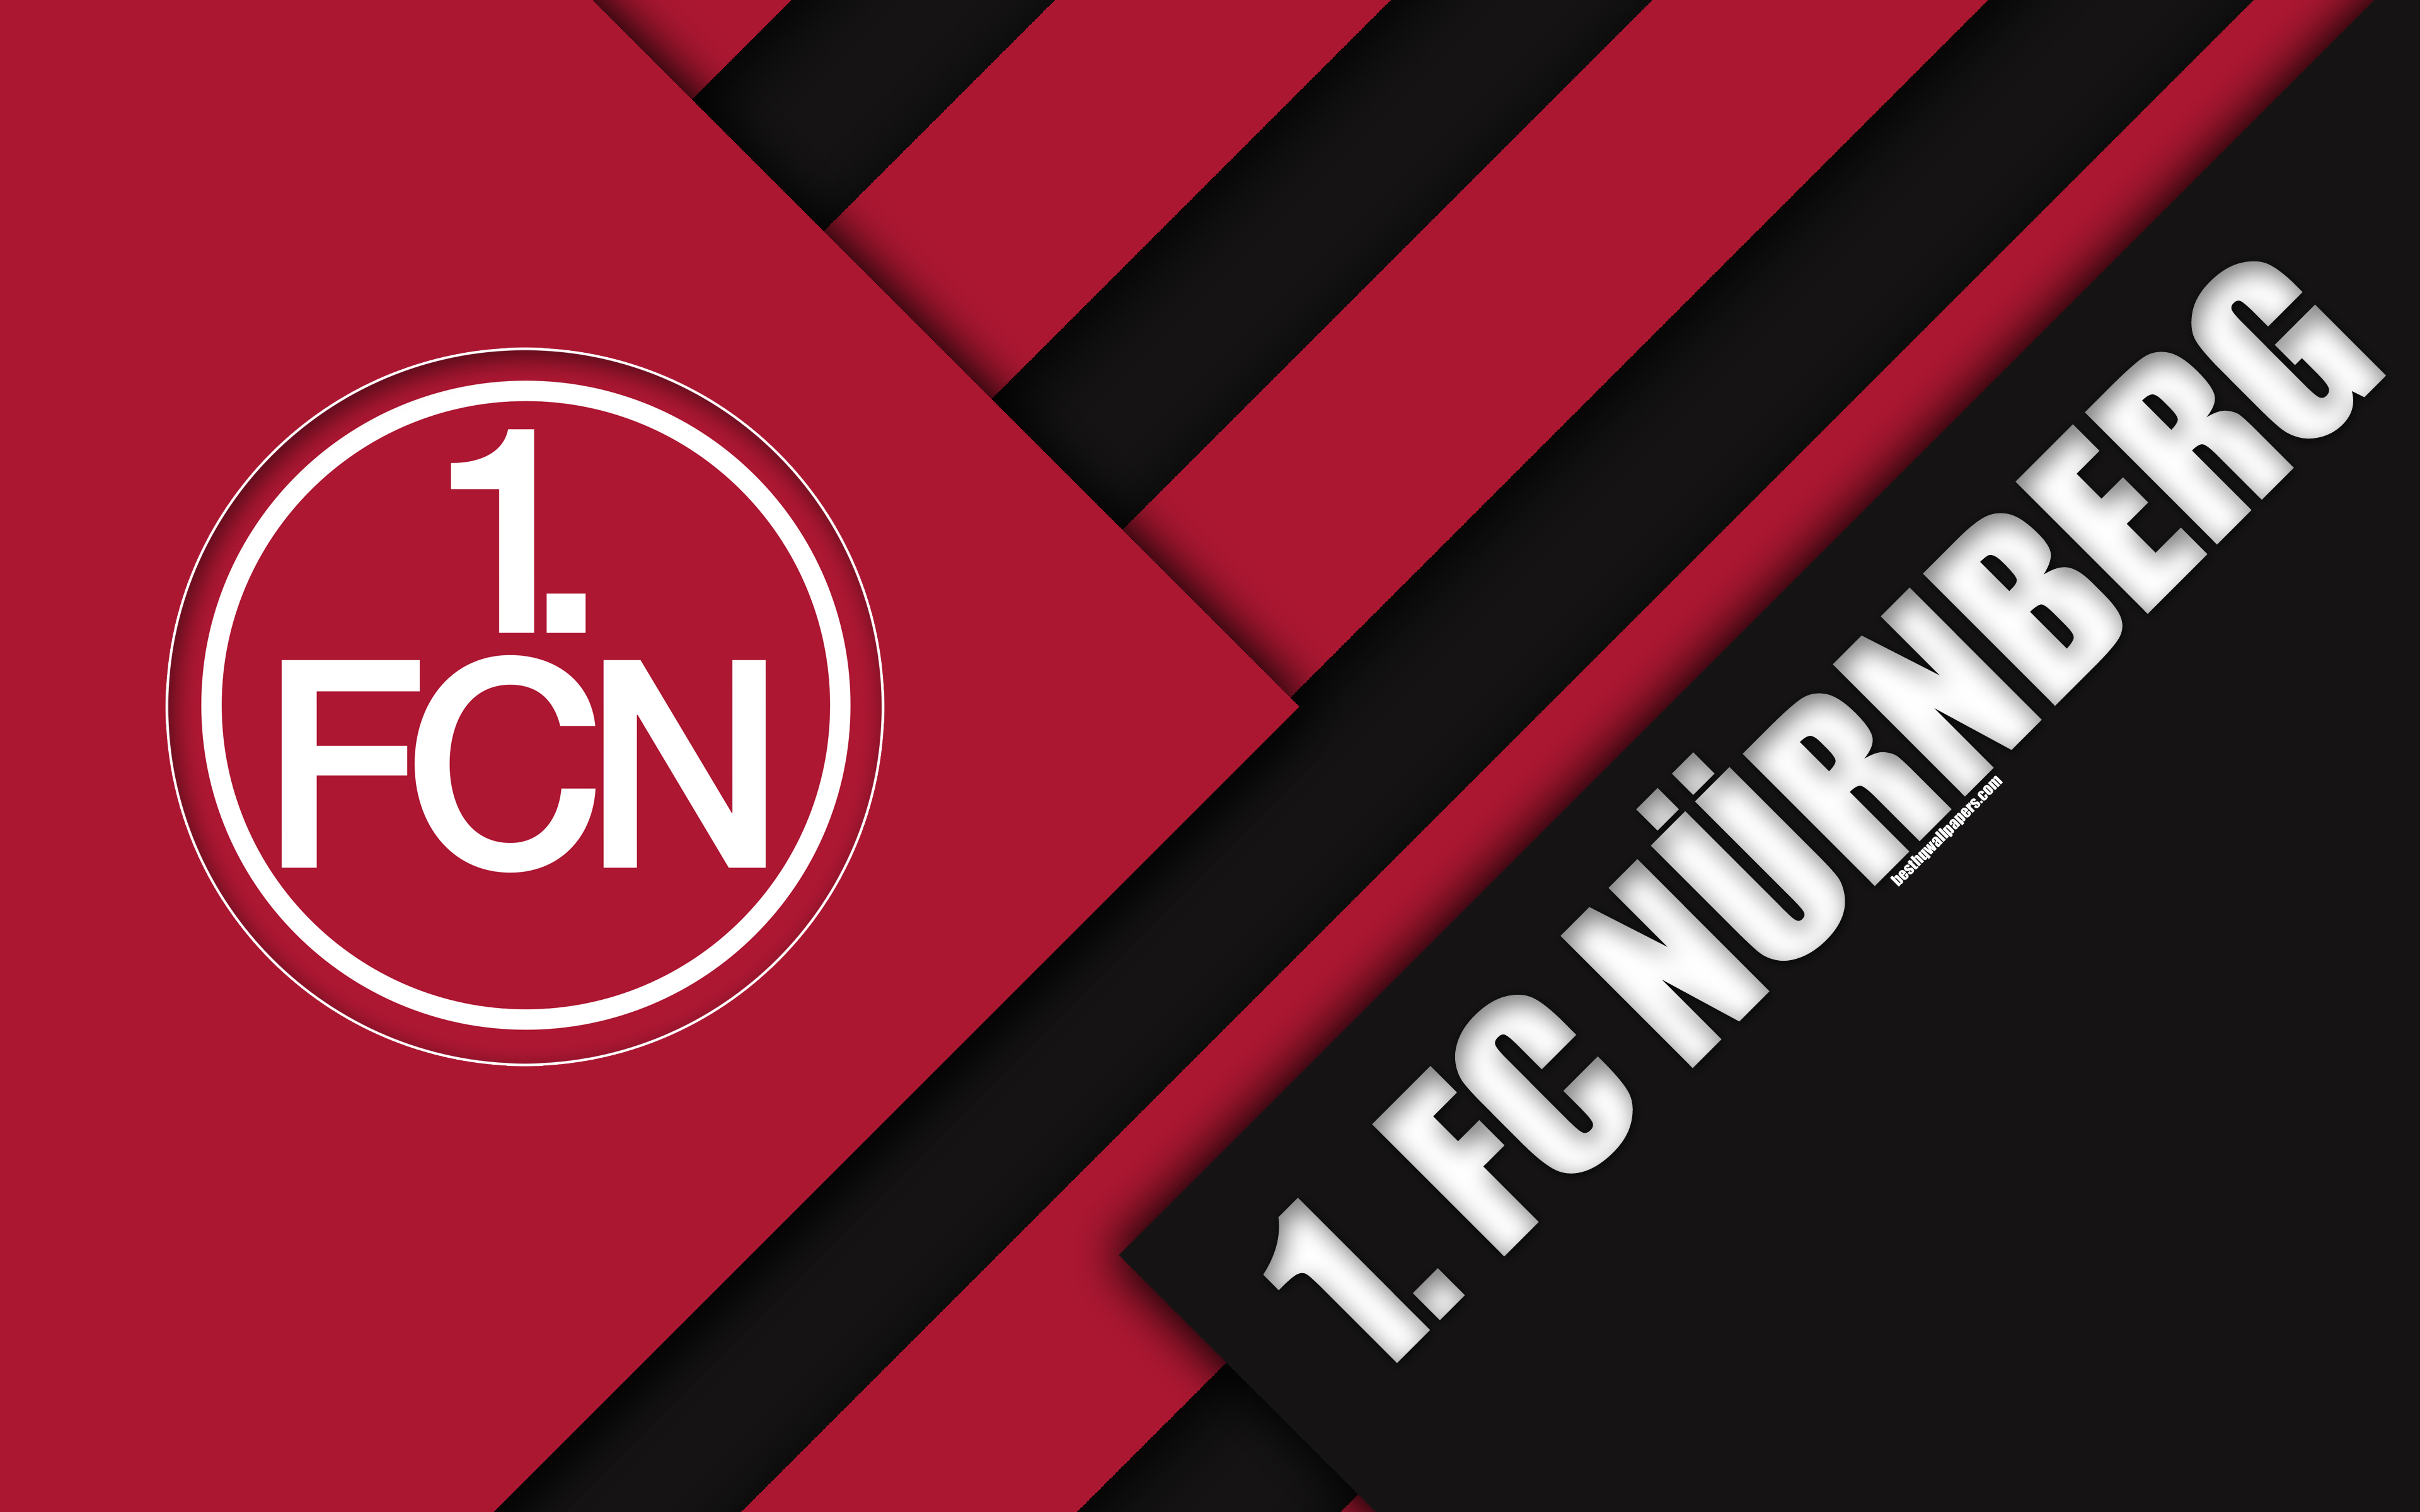 Download wallpapers FC Nürnberg, logo, 4k, German football club ...